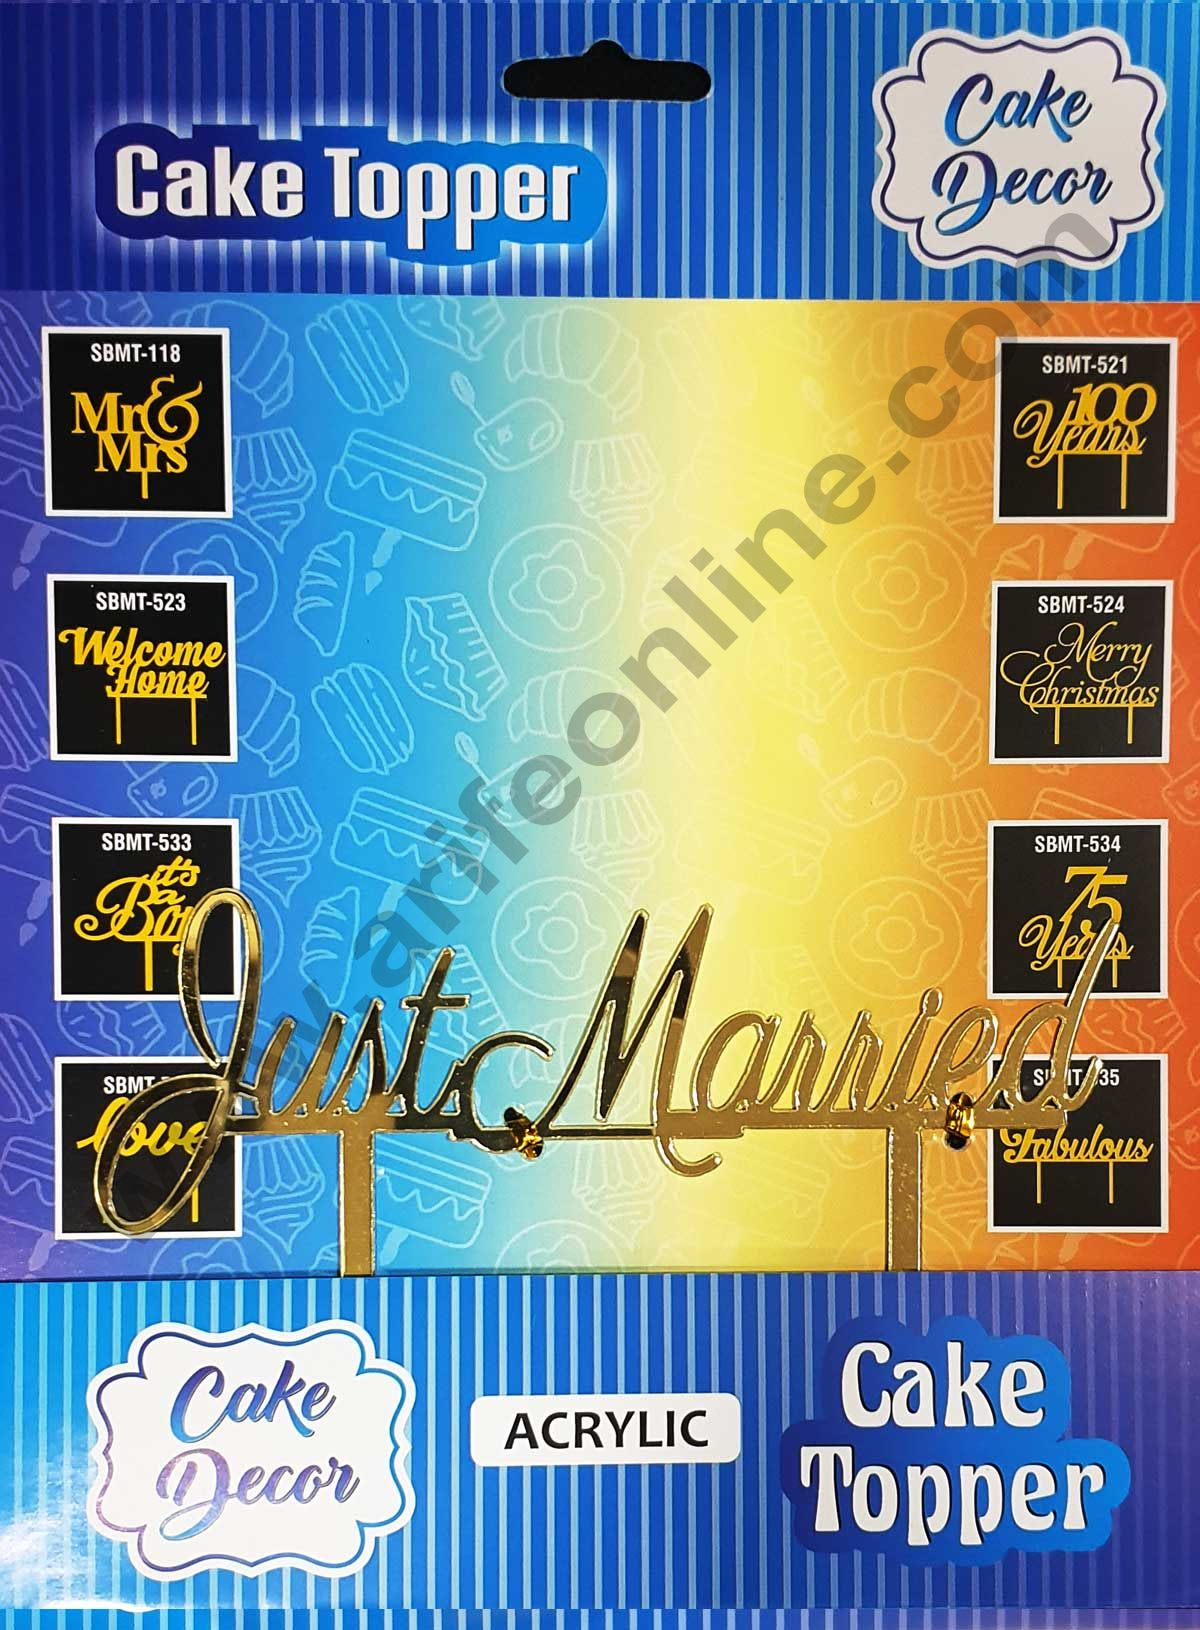 Cake Decor Mirror Shimmer Shining  Acrylic Cake Topper Just Married